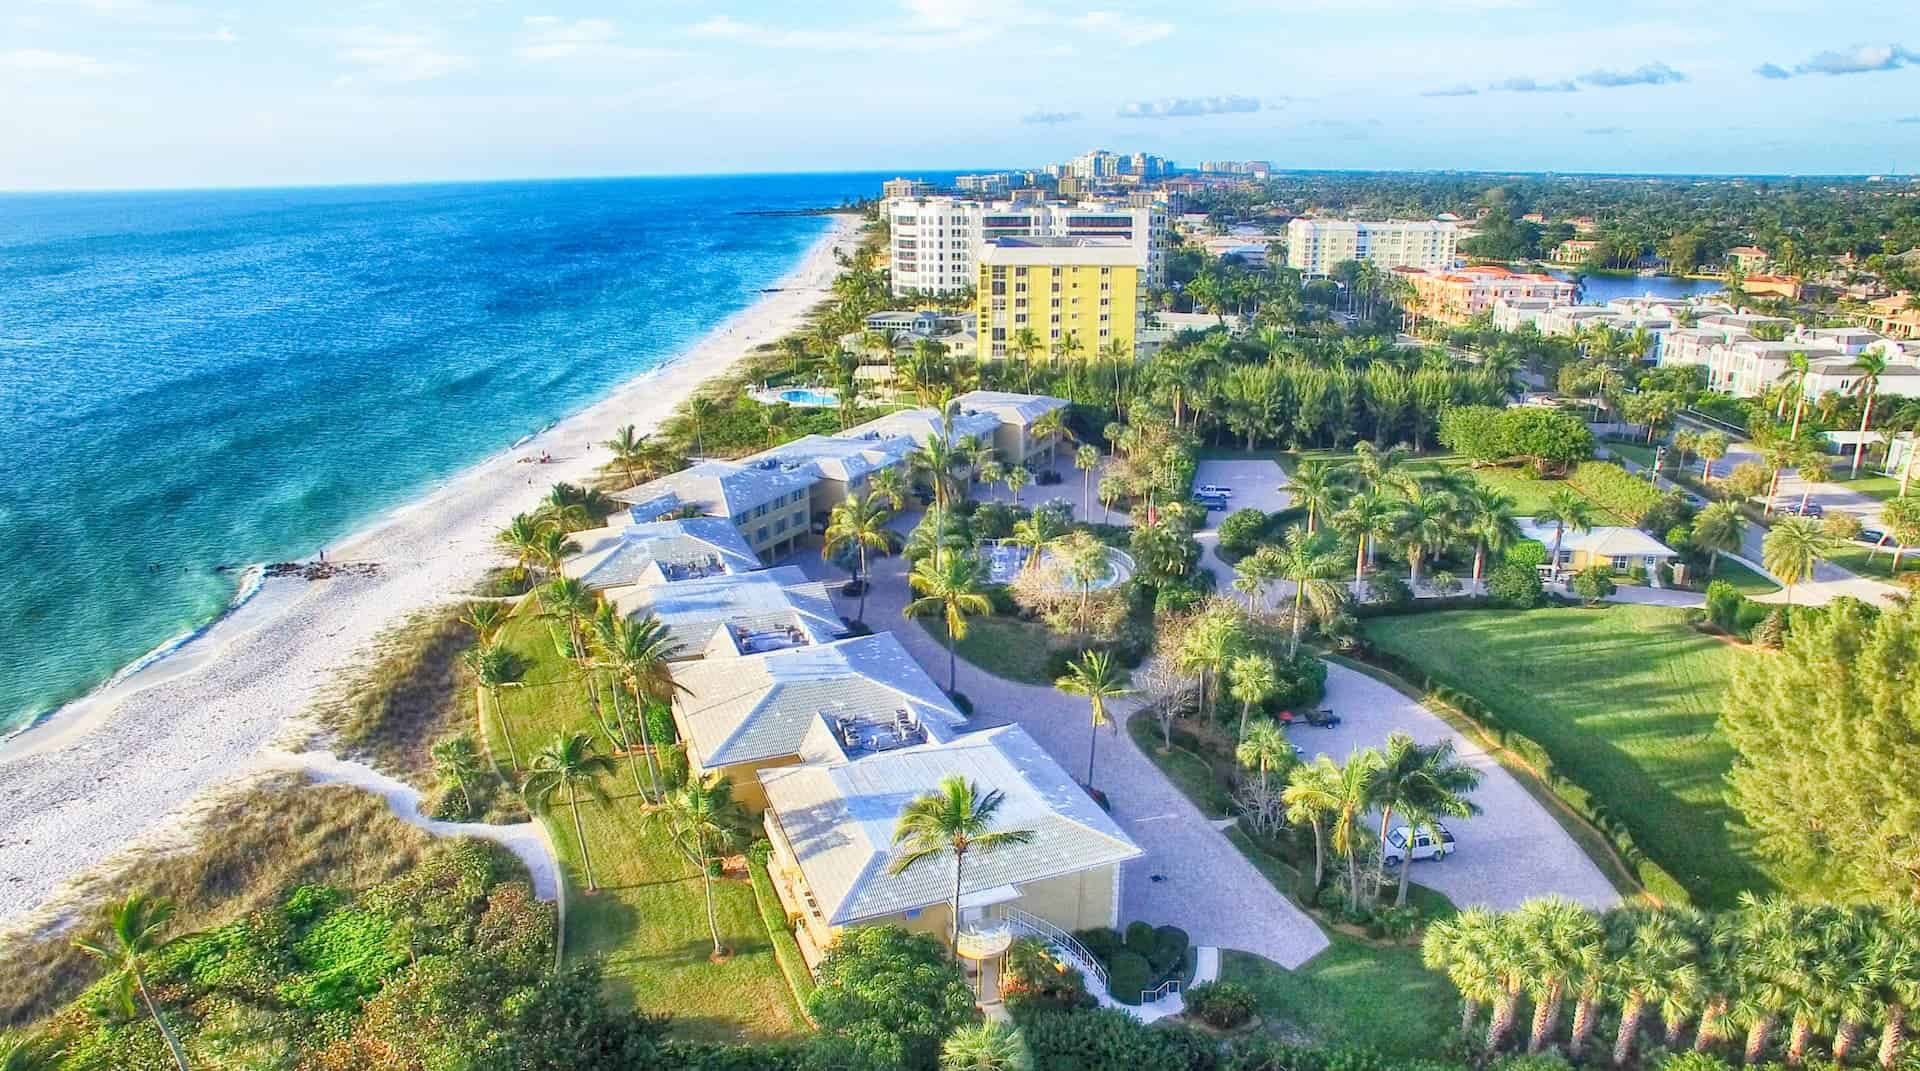 Naples Florida Coastline With Buildings and Homes